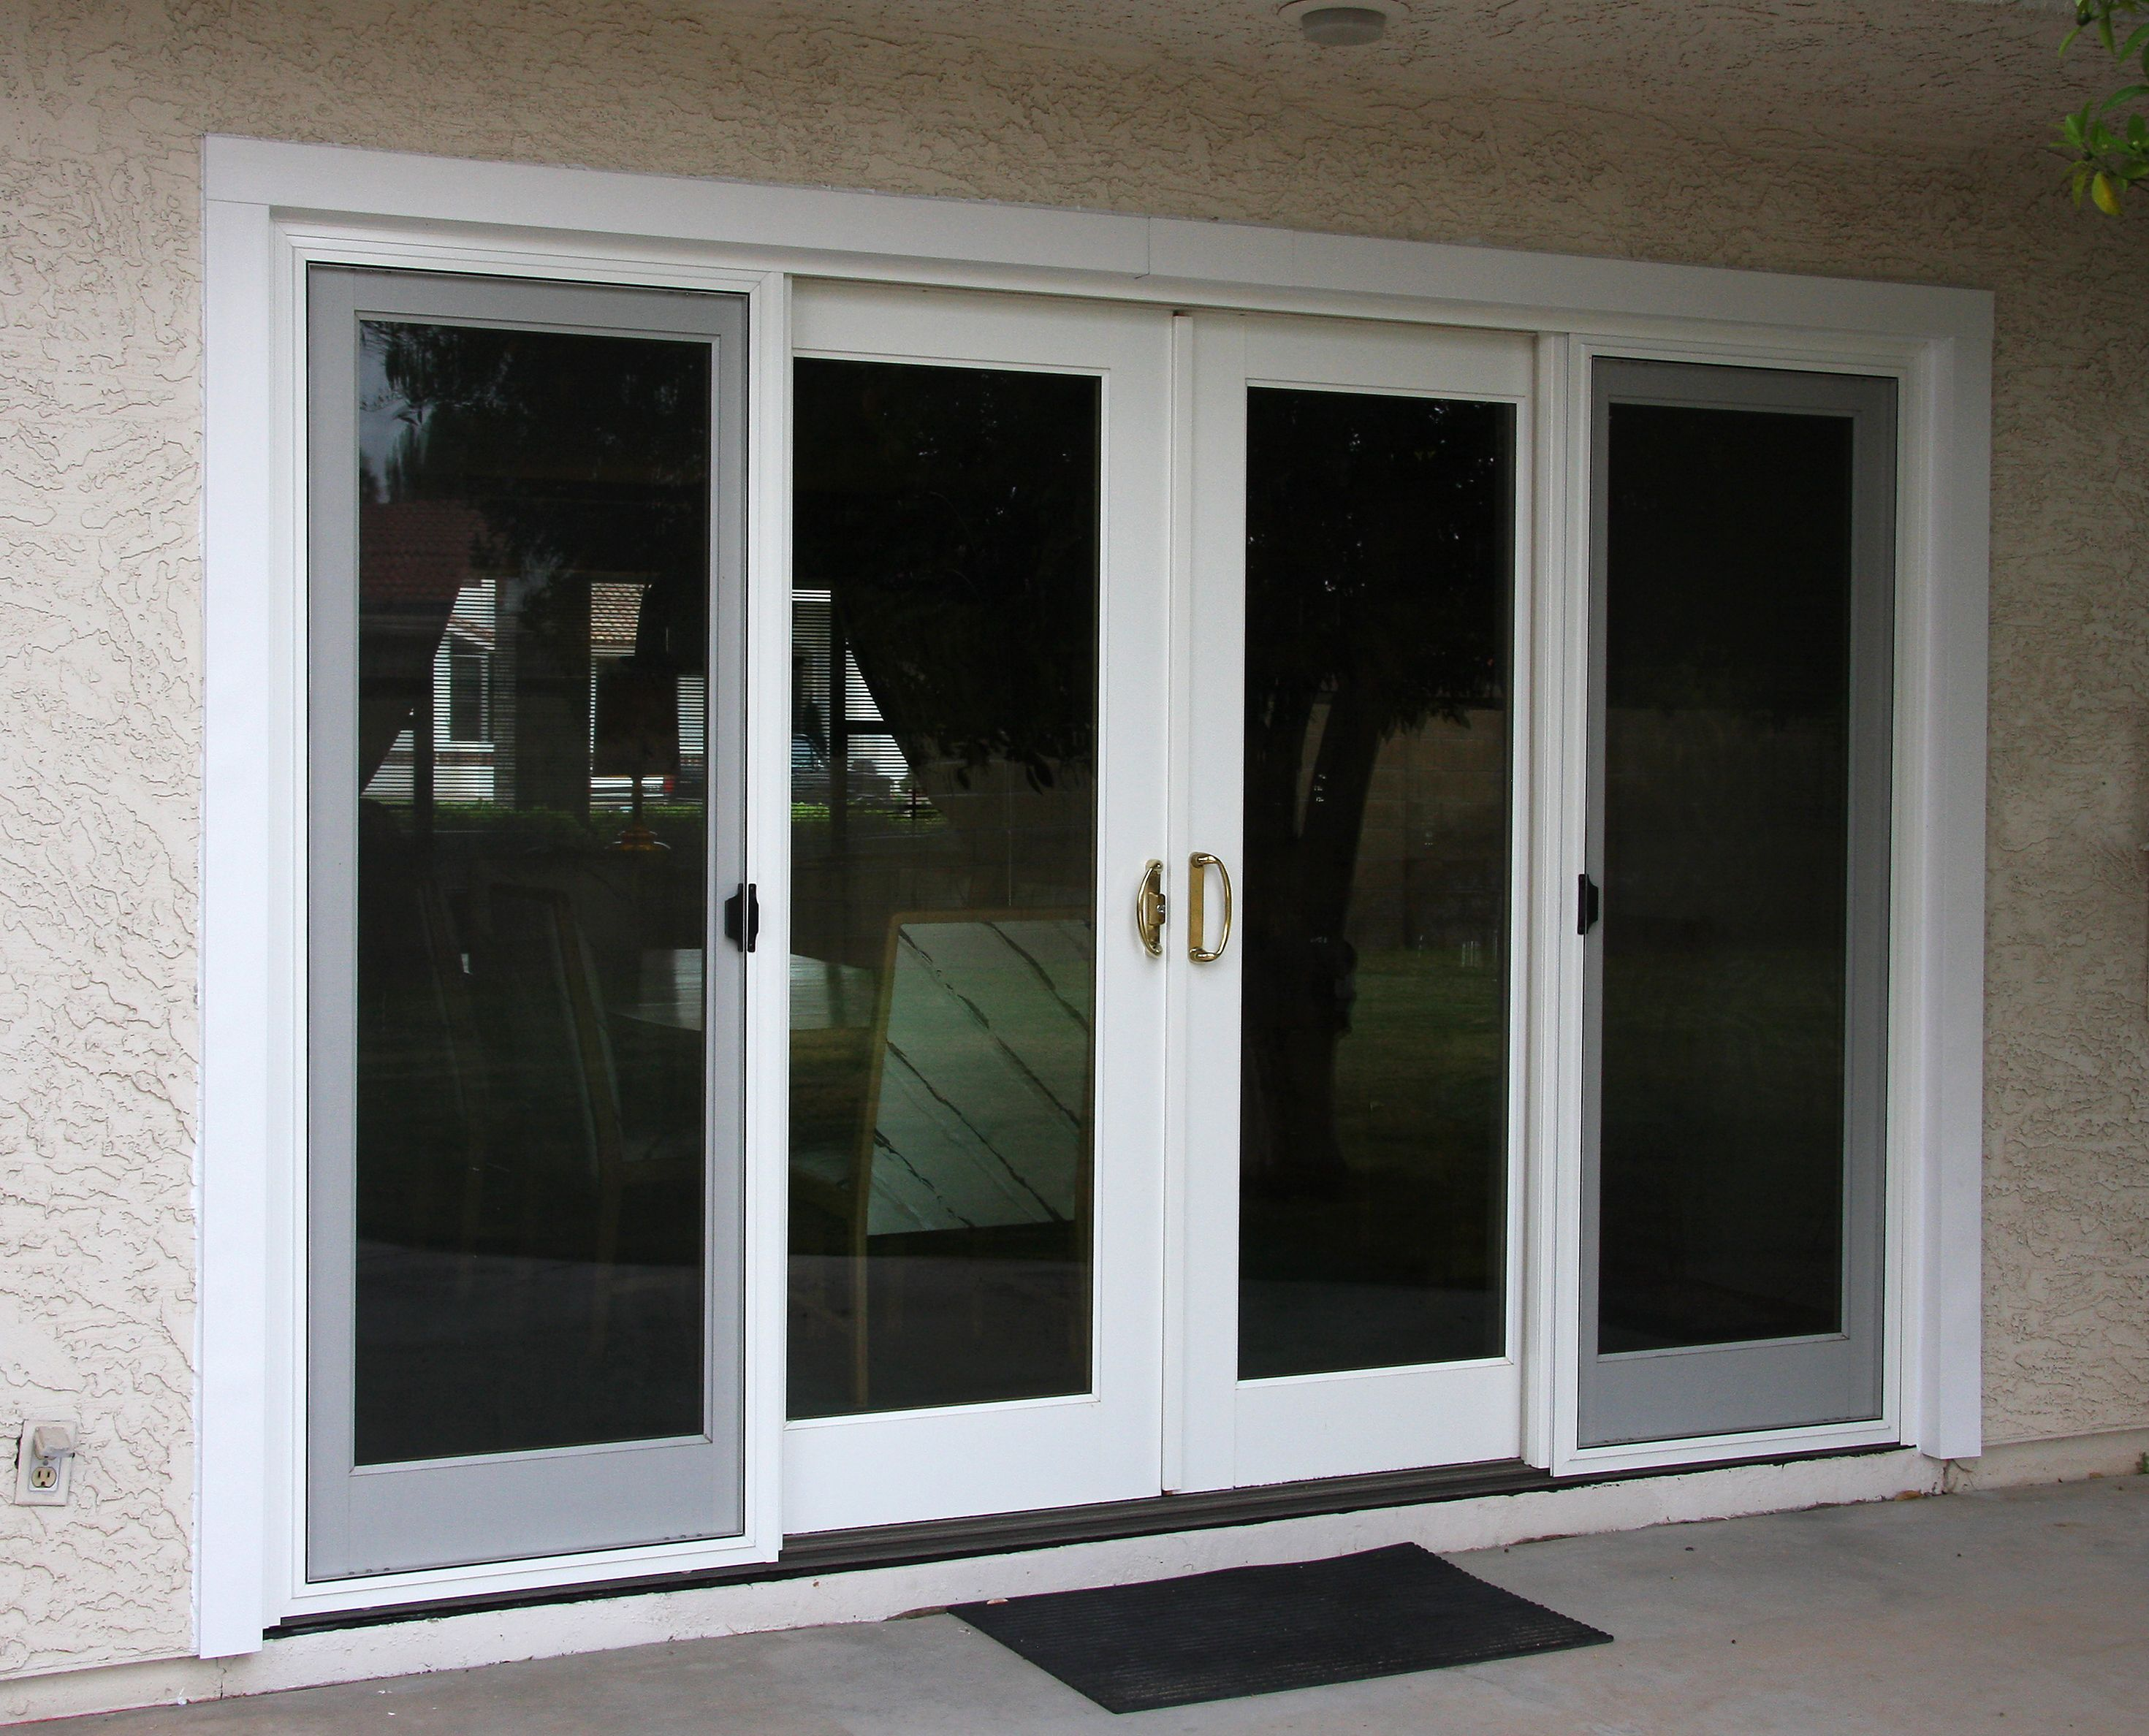 4 Panel Sliding Patio French Door In White So Beautiful Done By Krasiva Windows And Doors In Sliding Glass Doors Patio French Doors Patio Sliding Patio Doors